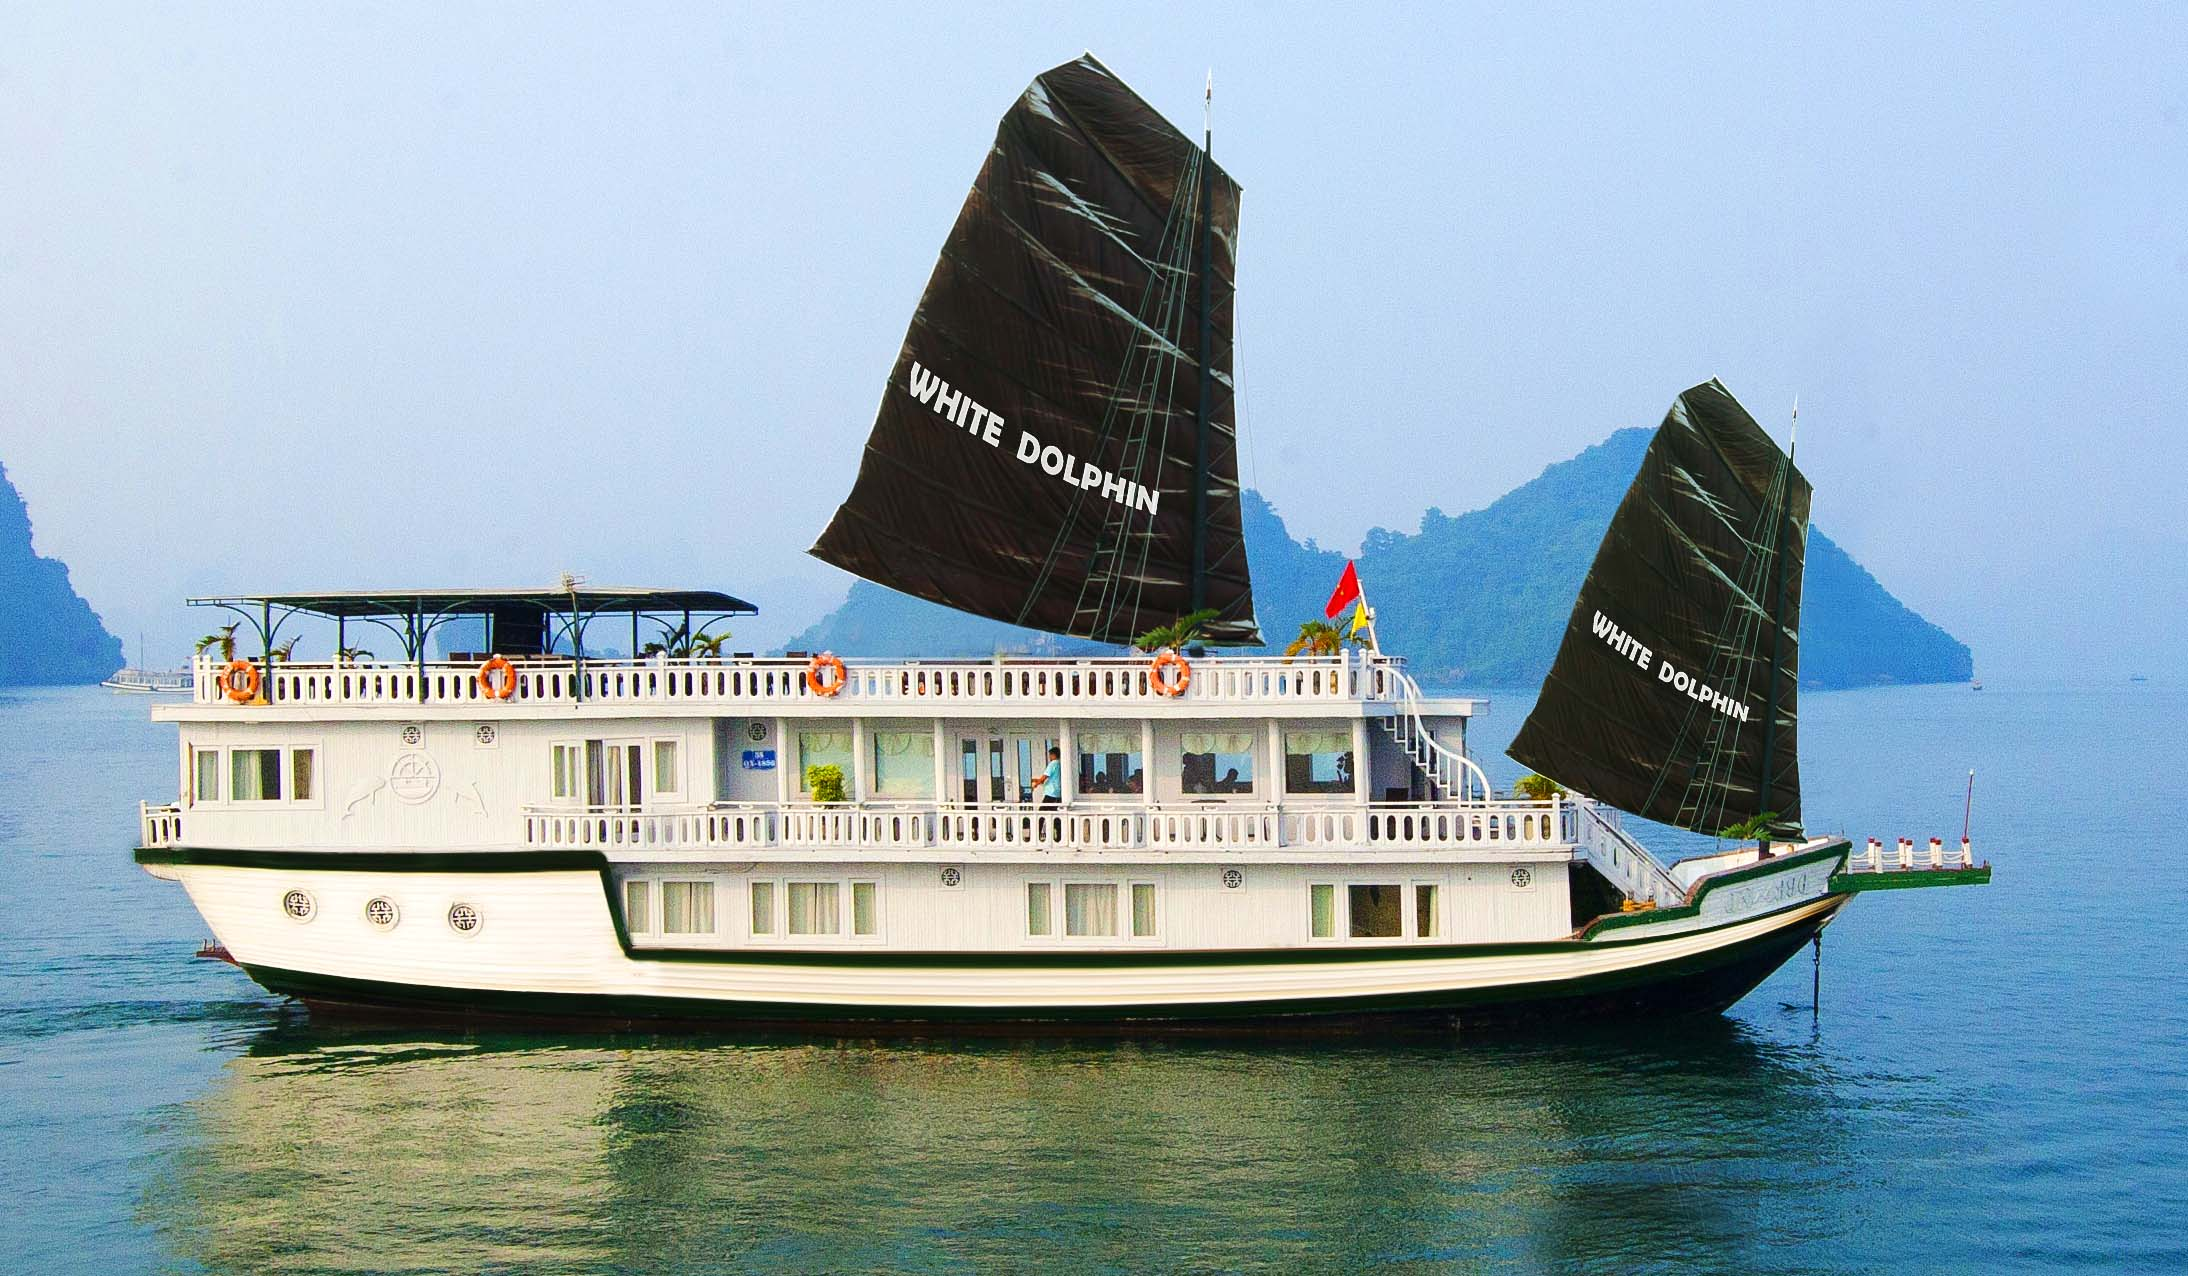 Luxury White Dolphin Cruise